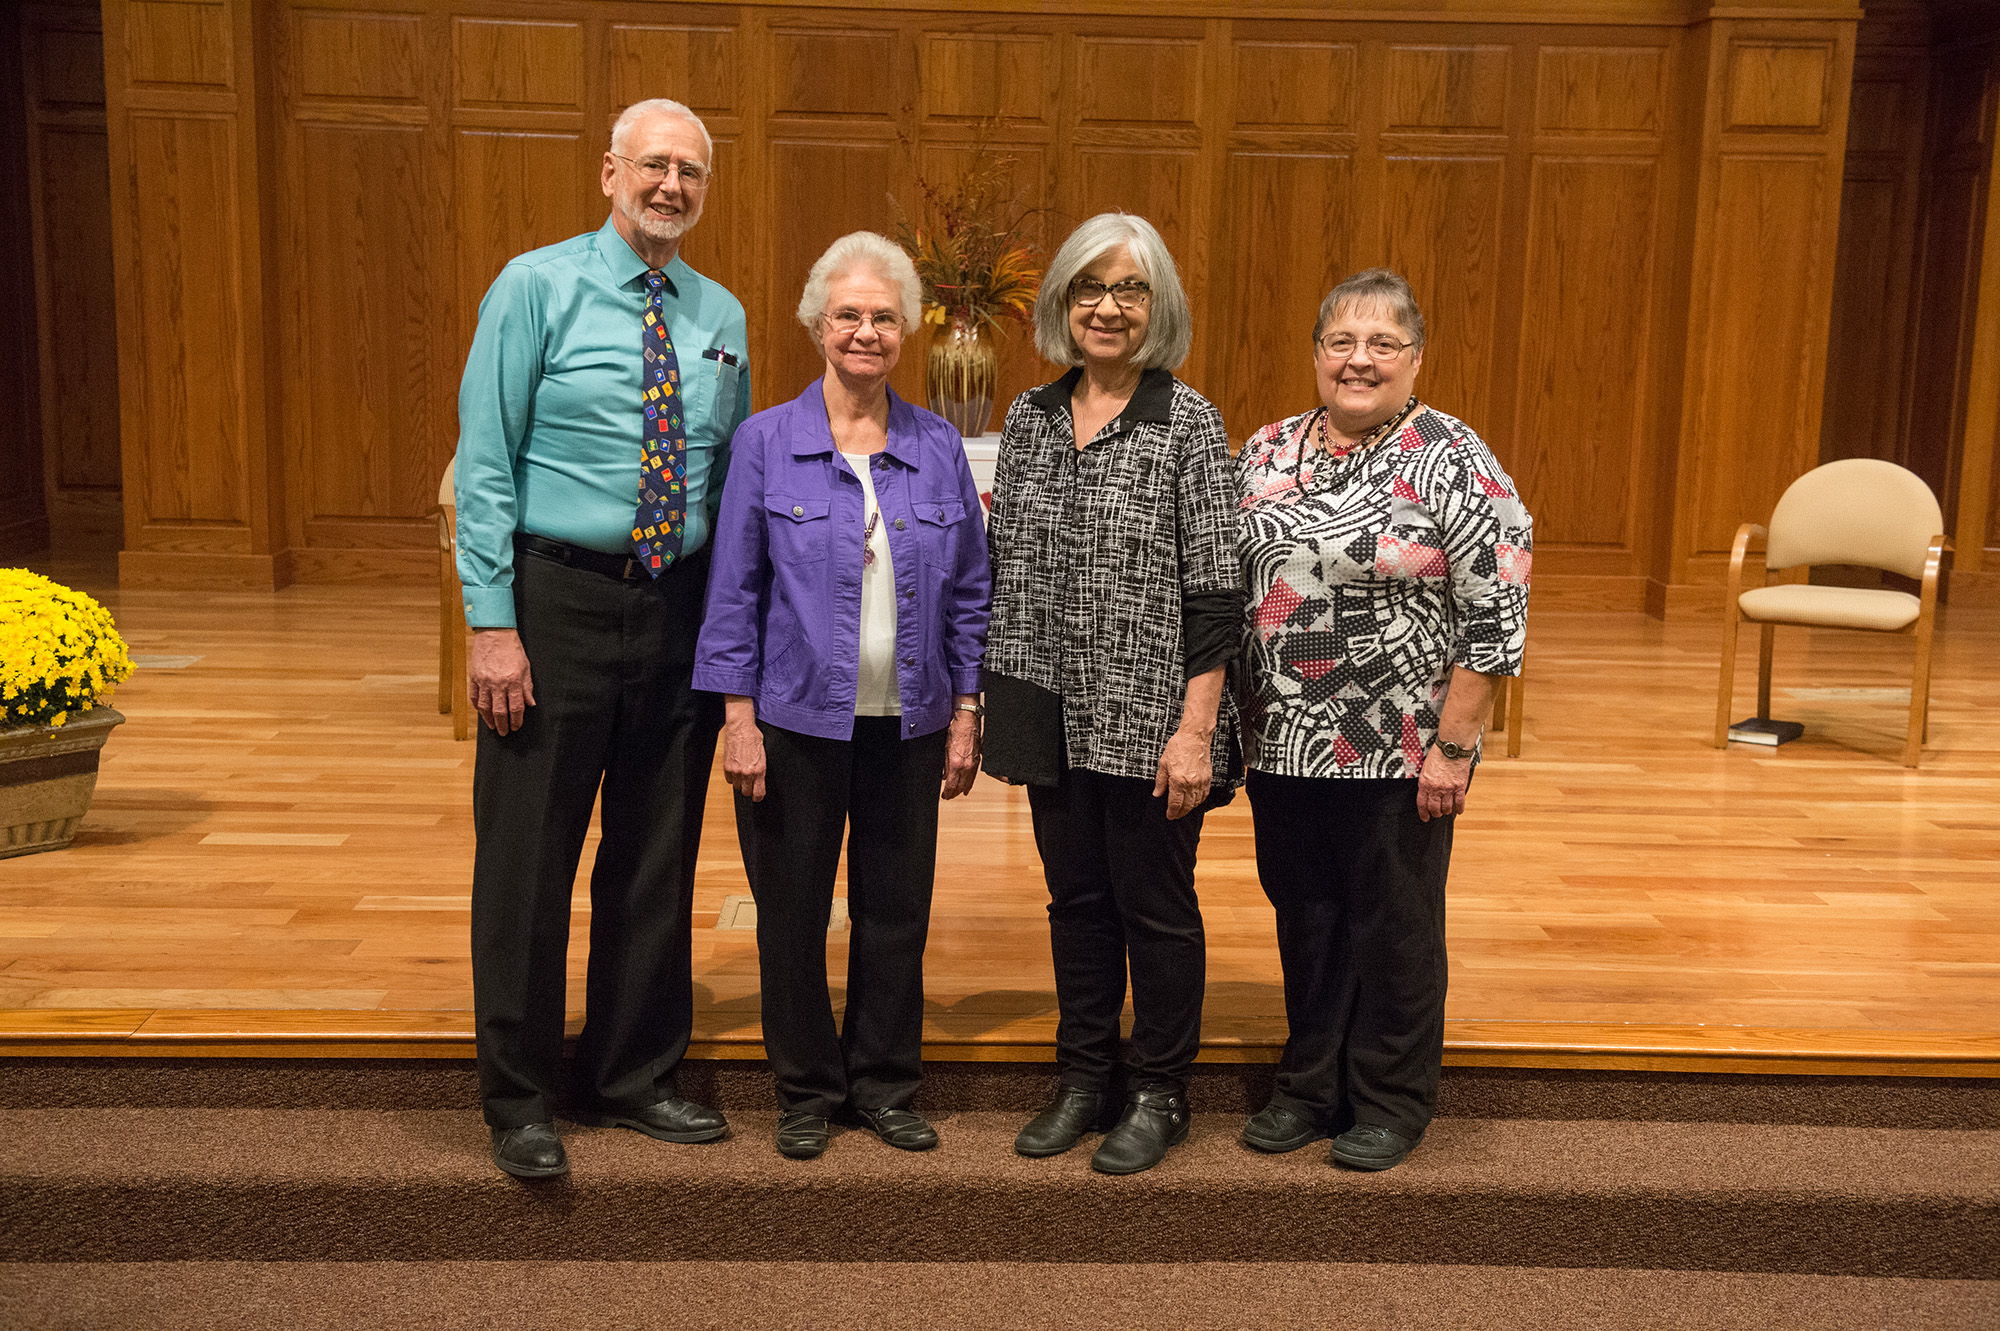 Hesston College's newest emeritus faculty members: Jim Yoder '62, Joyce Huber, Bonnie (Kauffman) '65 Sowers, Ruby (Chupp) '73 Graber and Dave Osborne Ac64, '66 (not pictured)